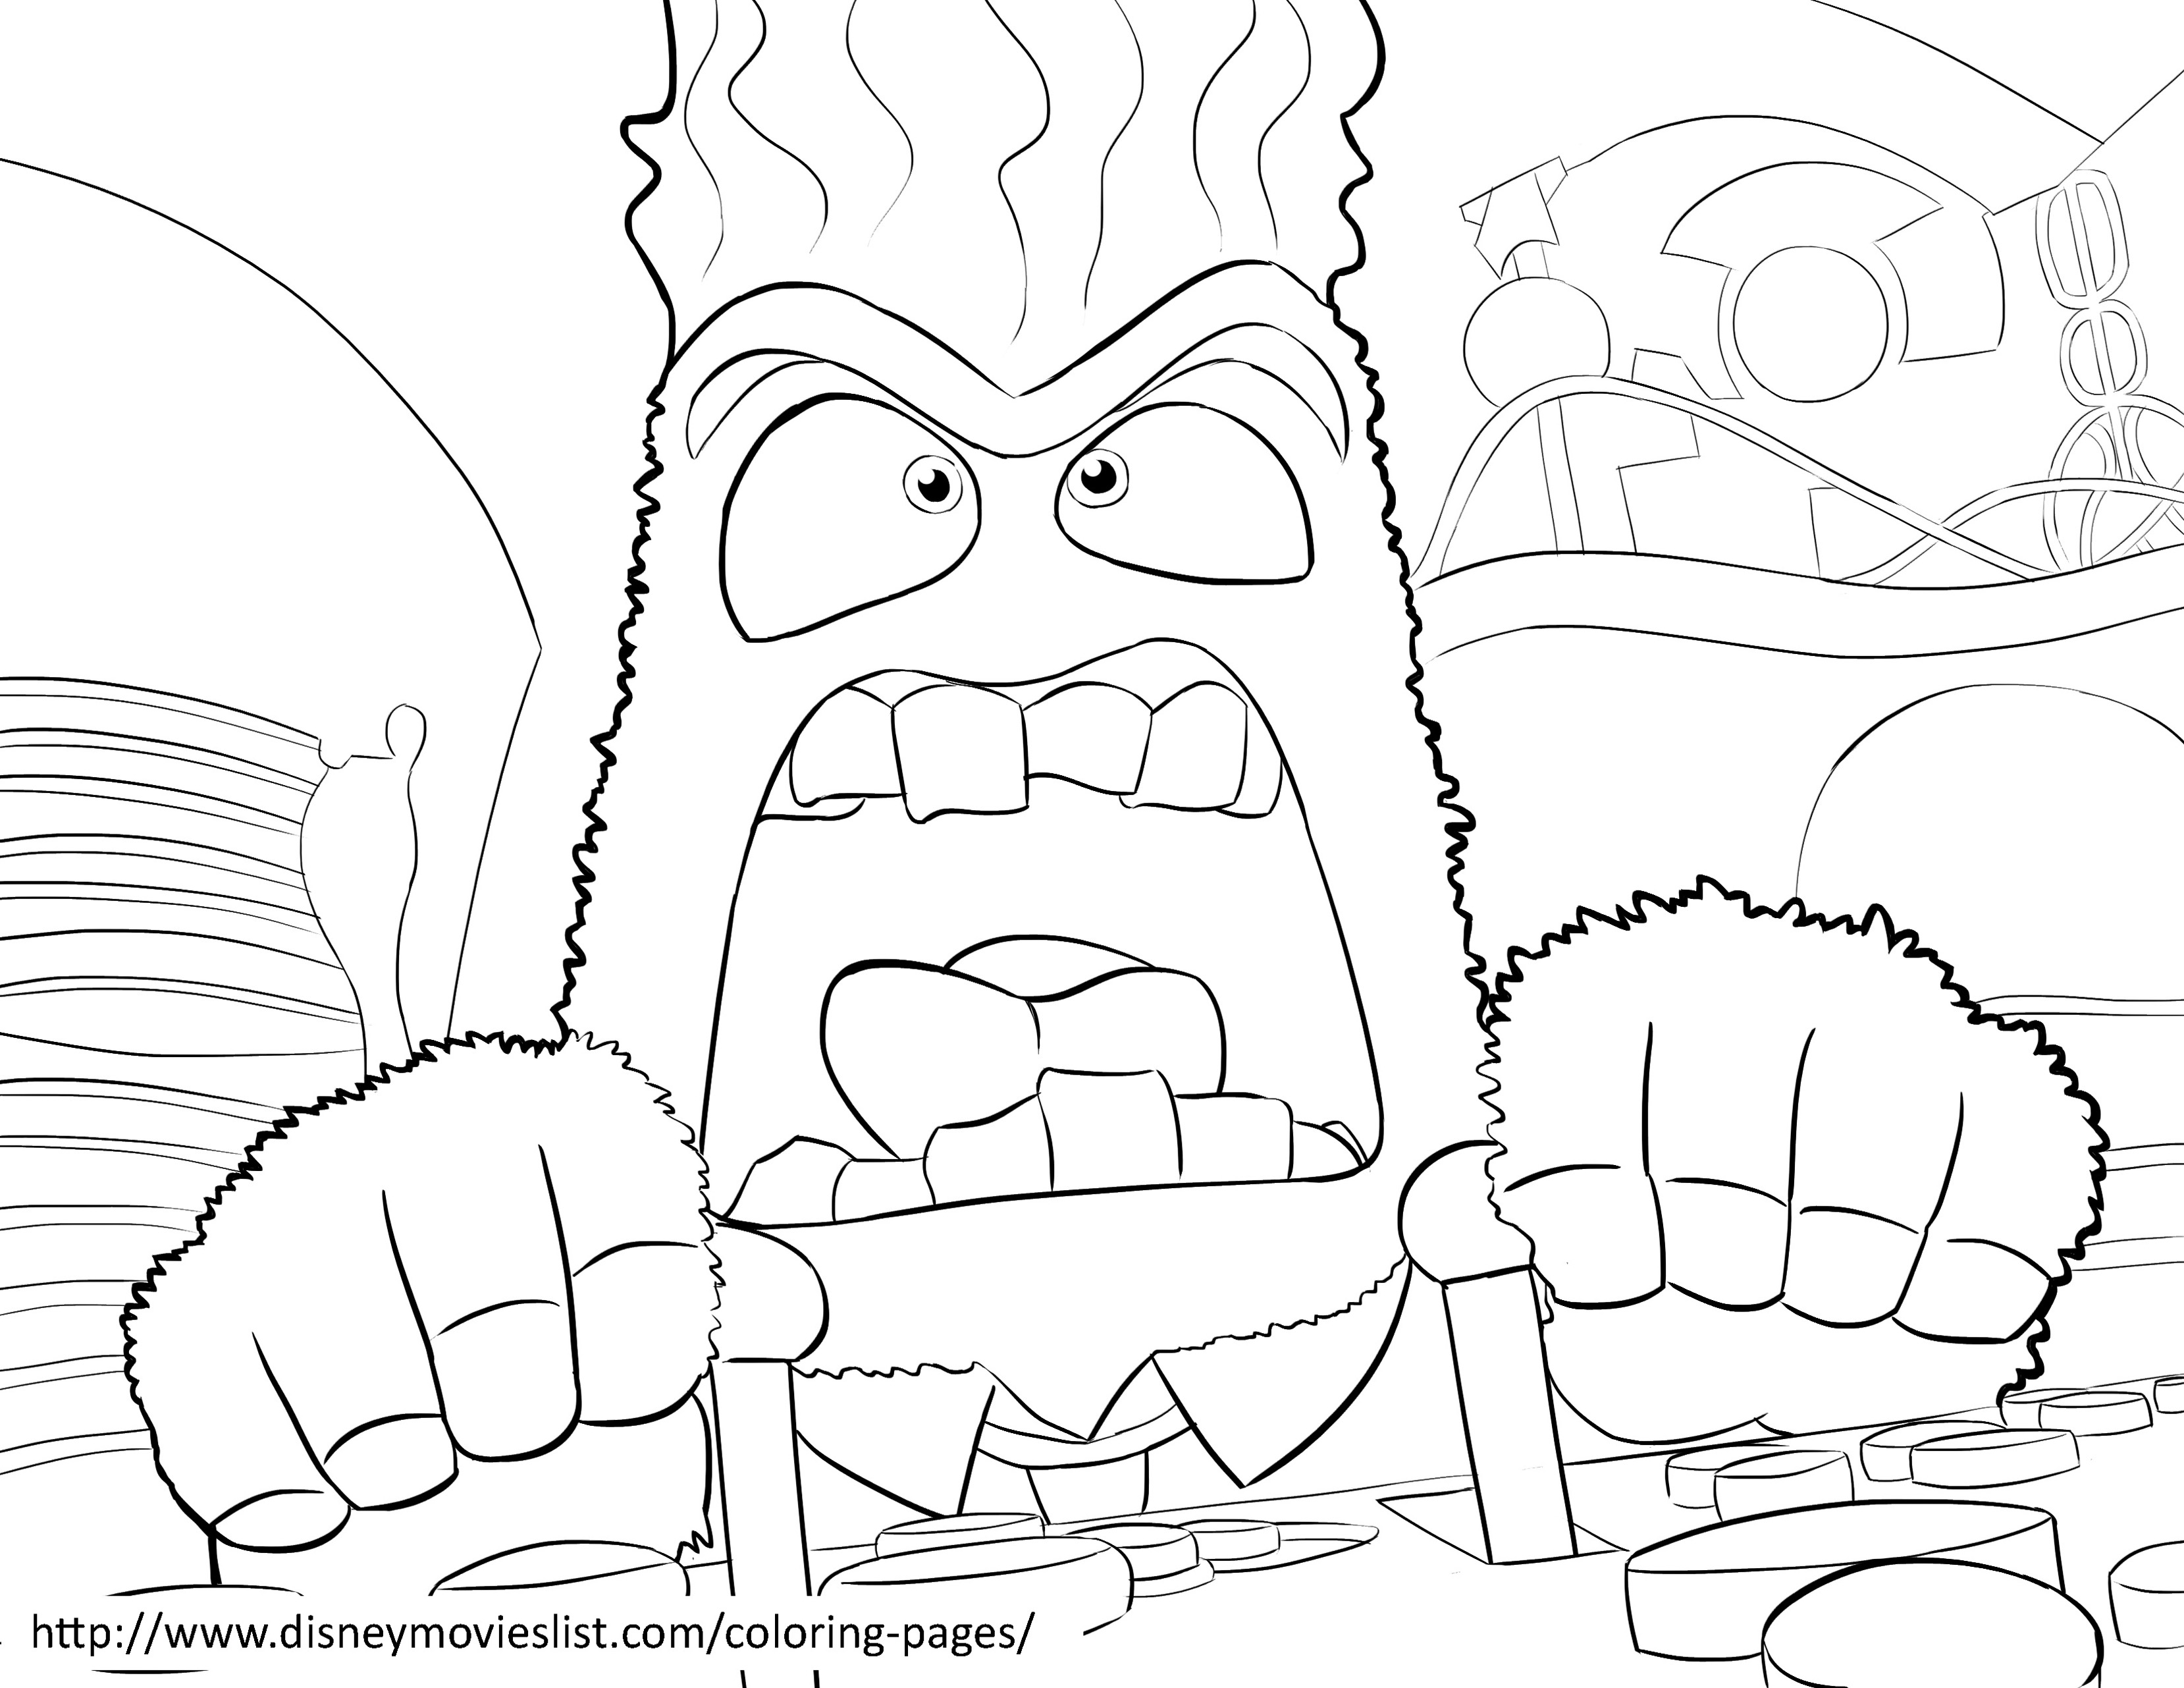 Inside Out Coloring Page With Few Details For Kids